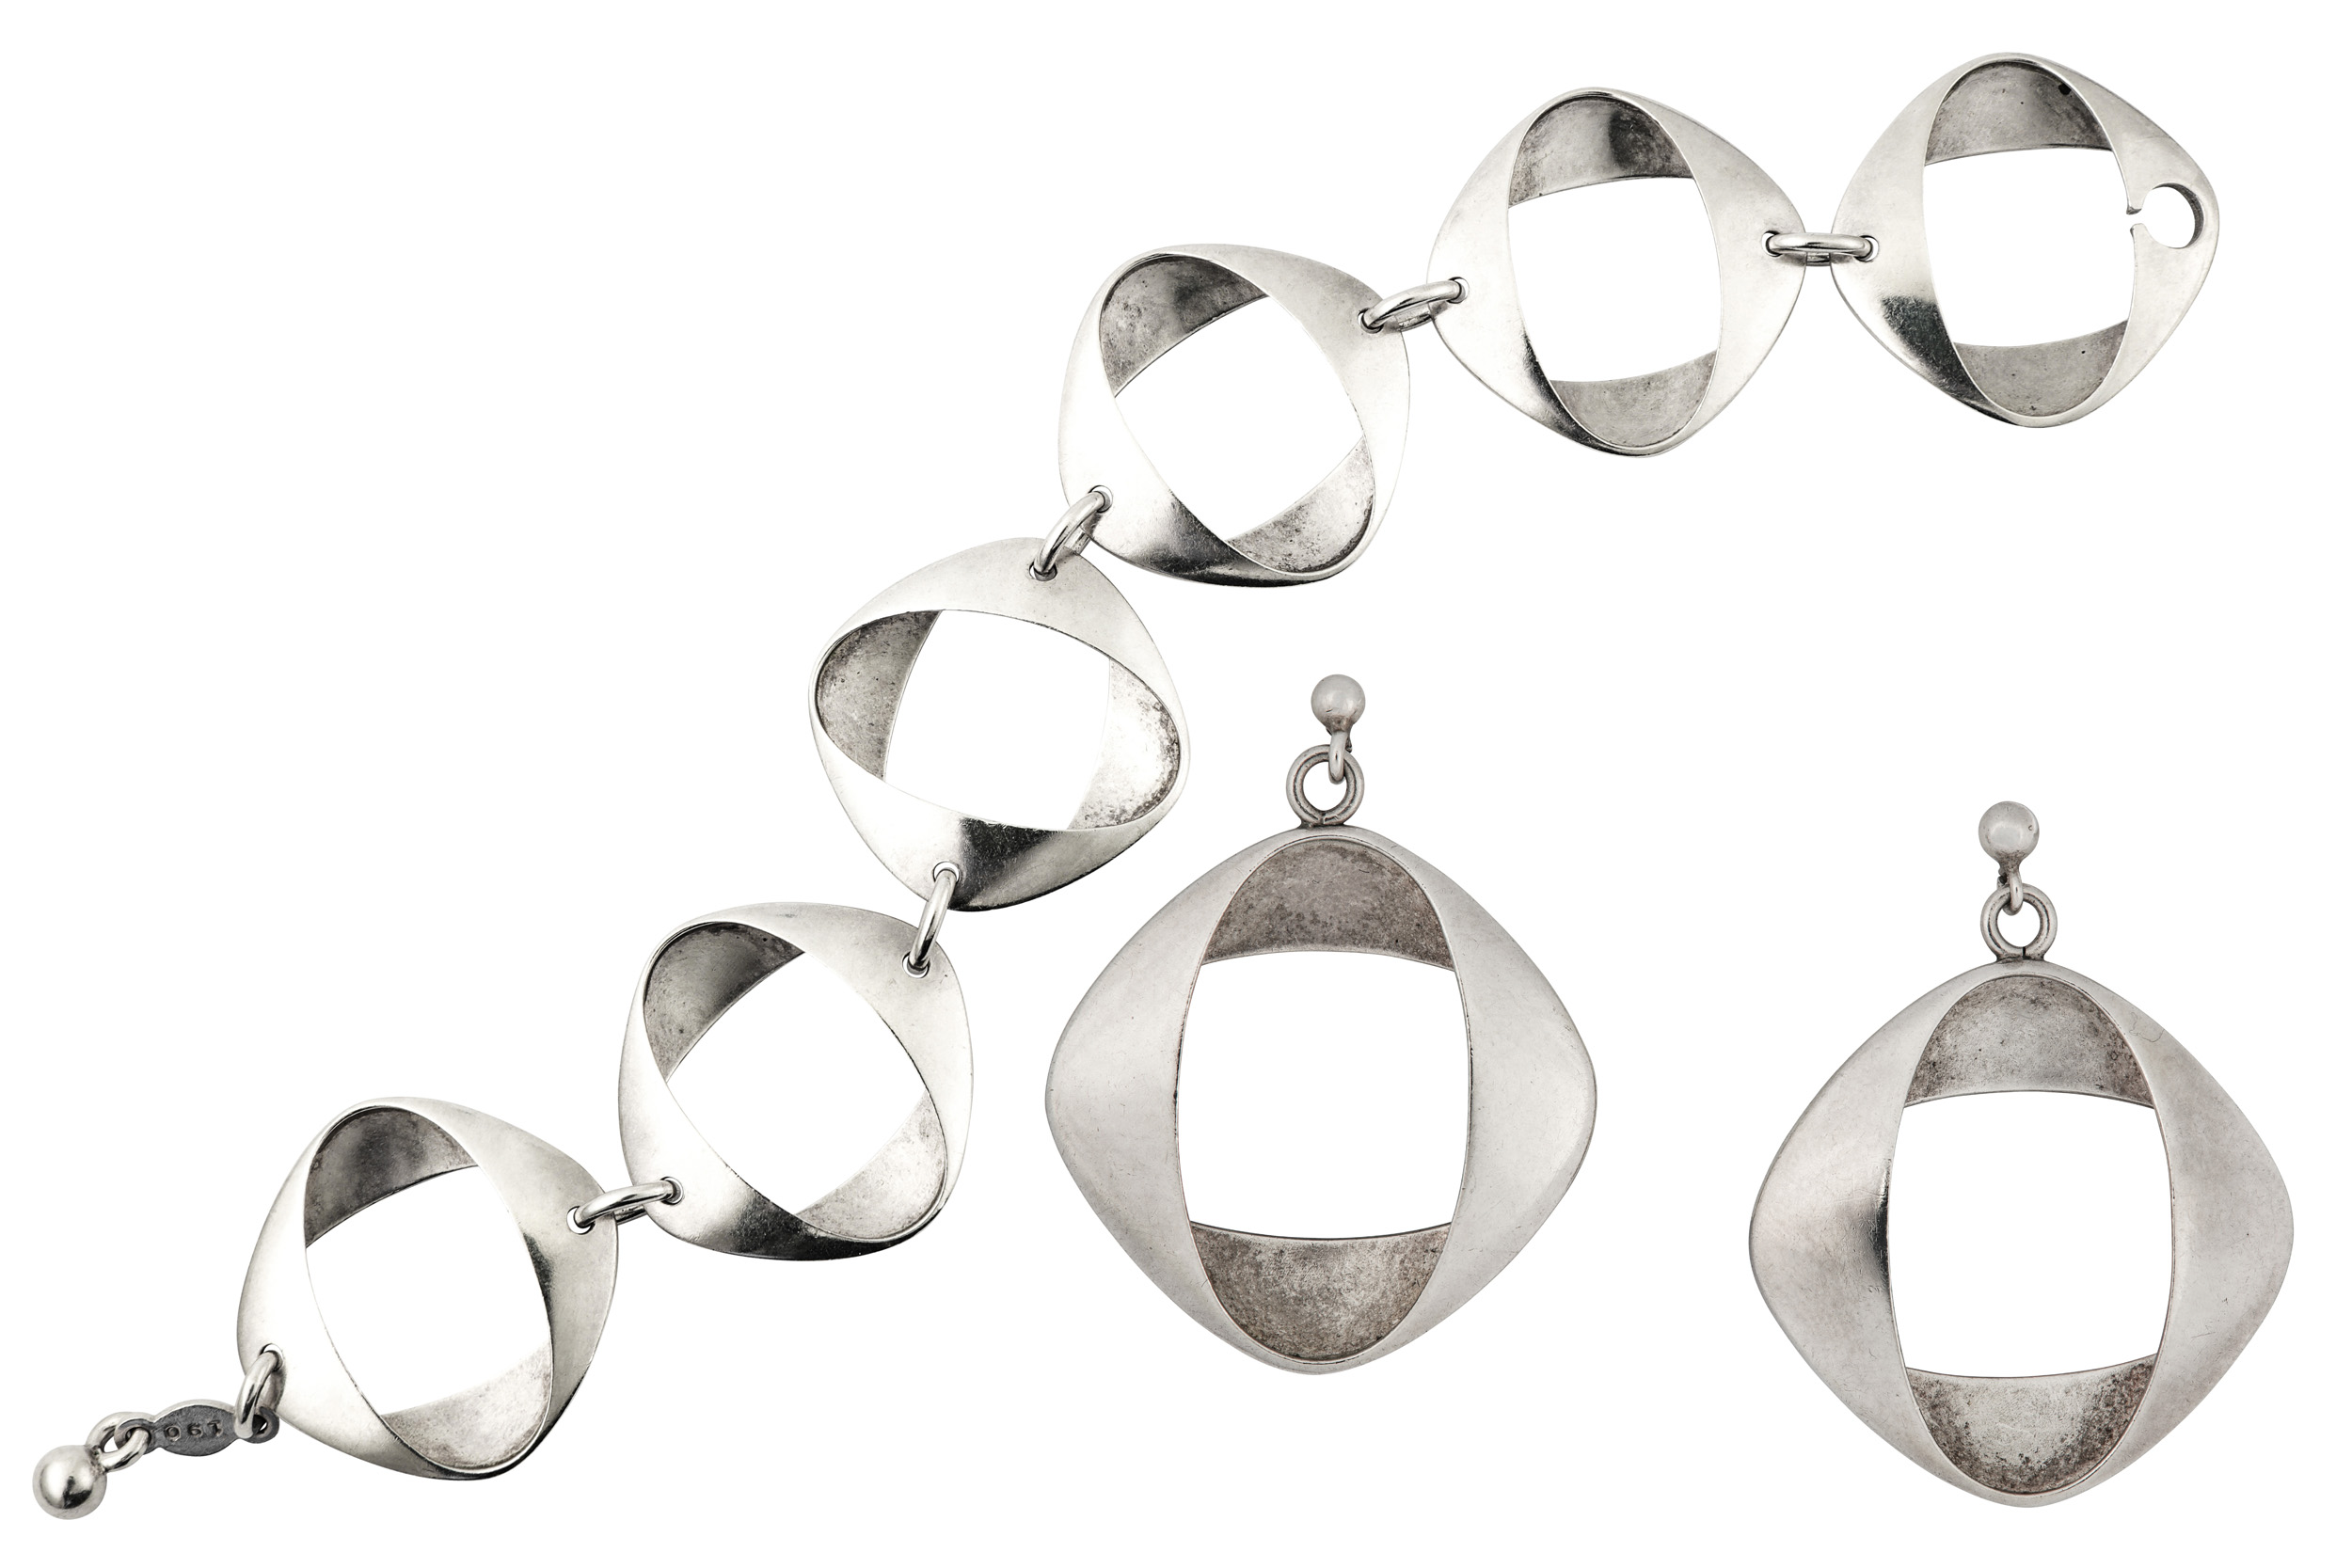 Lot 60 - A bracelet and earrings suite, by Henning Koppel for Georg Jensen